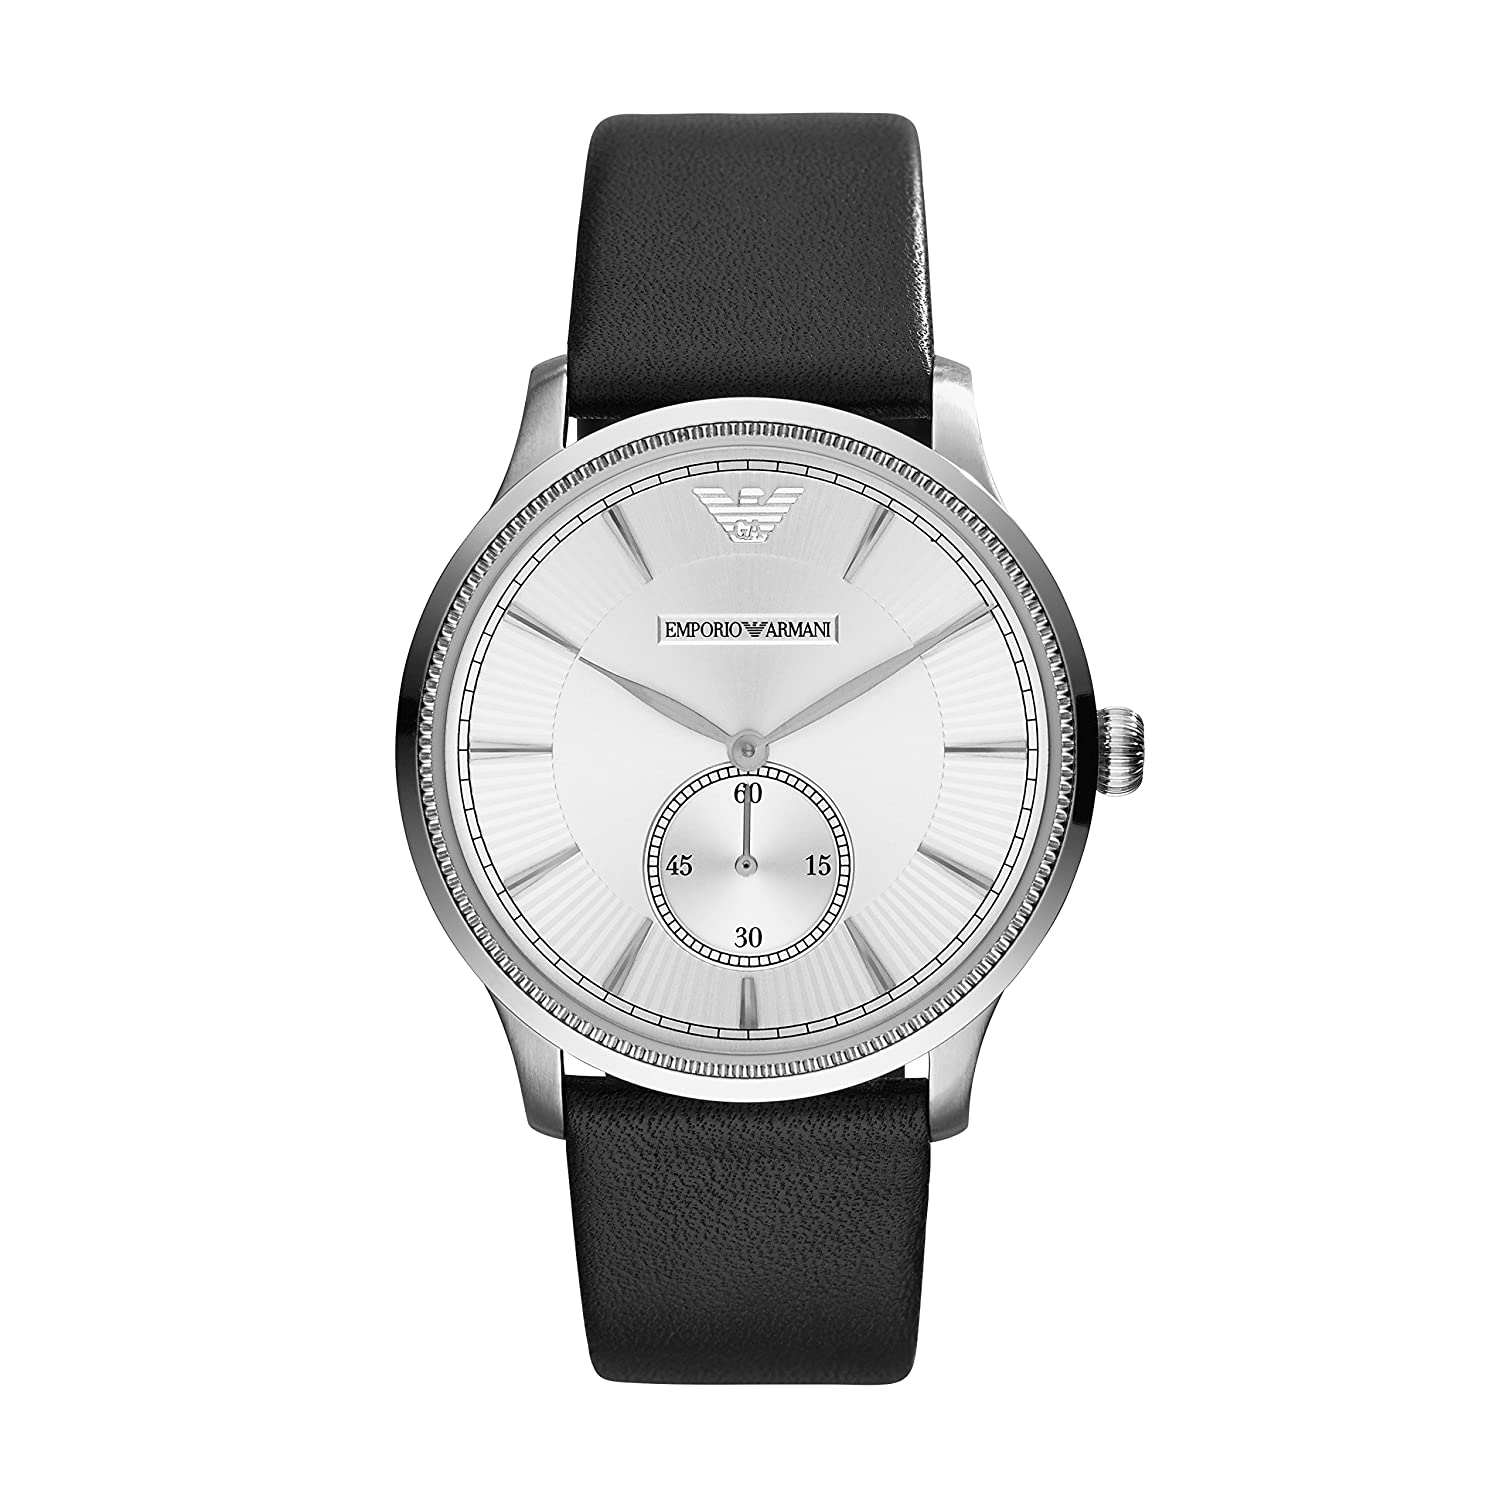 3e51ed9ba0 Emporio Armani Unisex Quartz Watch with Silver Dial Analogue Display and  Black Leather Bracelet AR1797: Amazon.co.uk: Watches